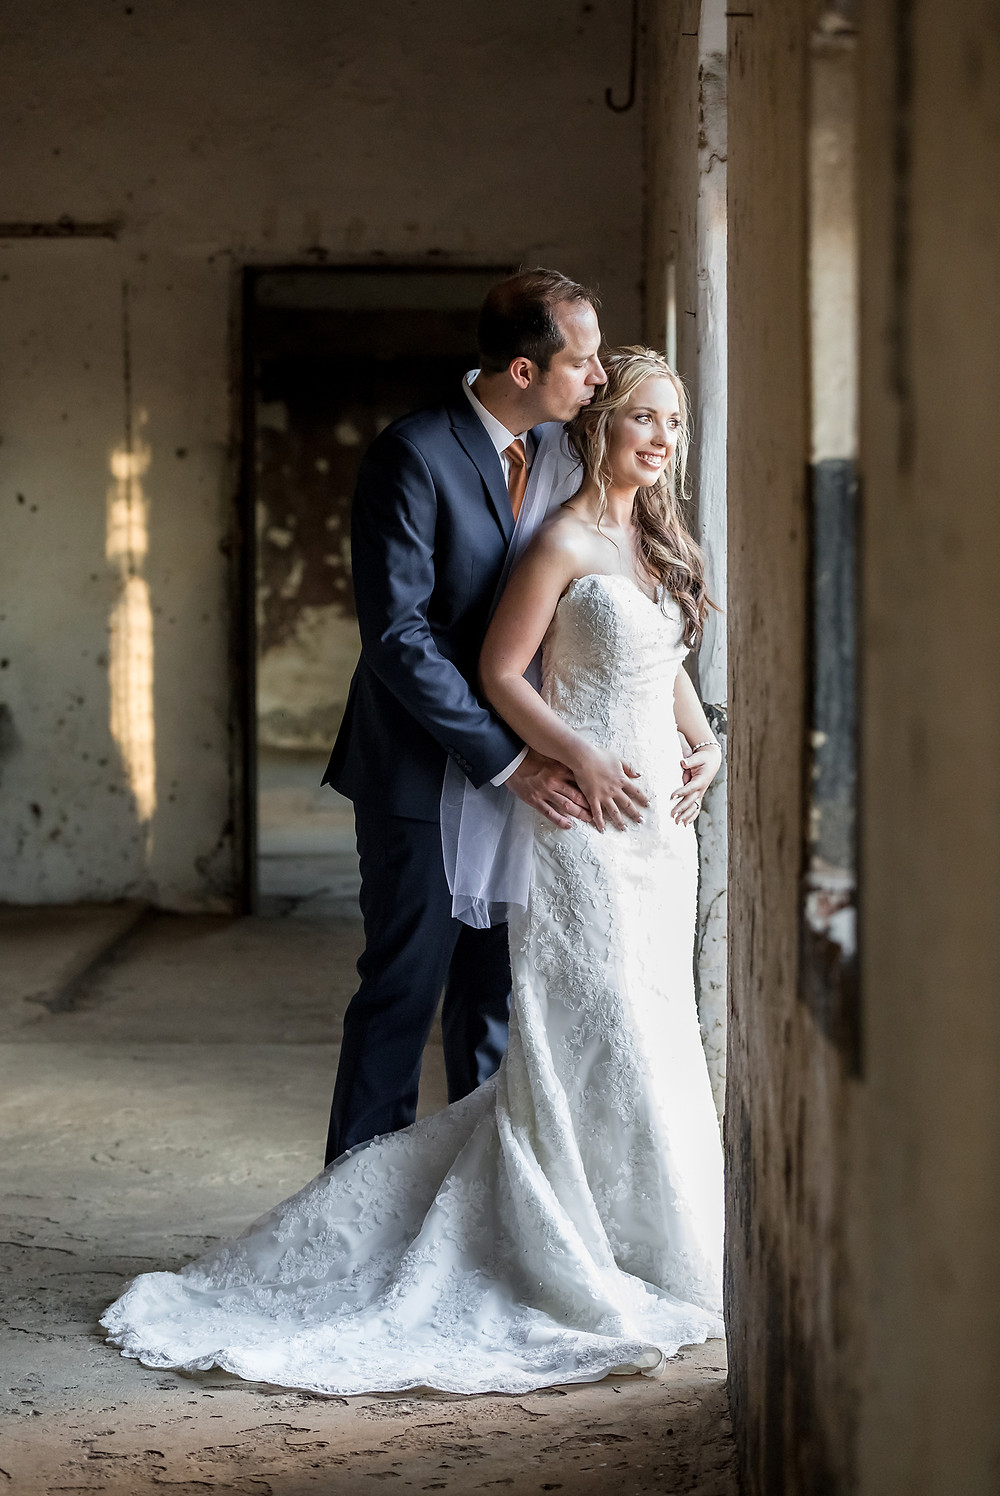 Wedding photography, l'Aquila Country Estate, Nicolene Meyer Photography